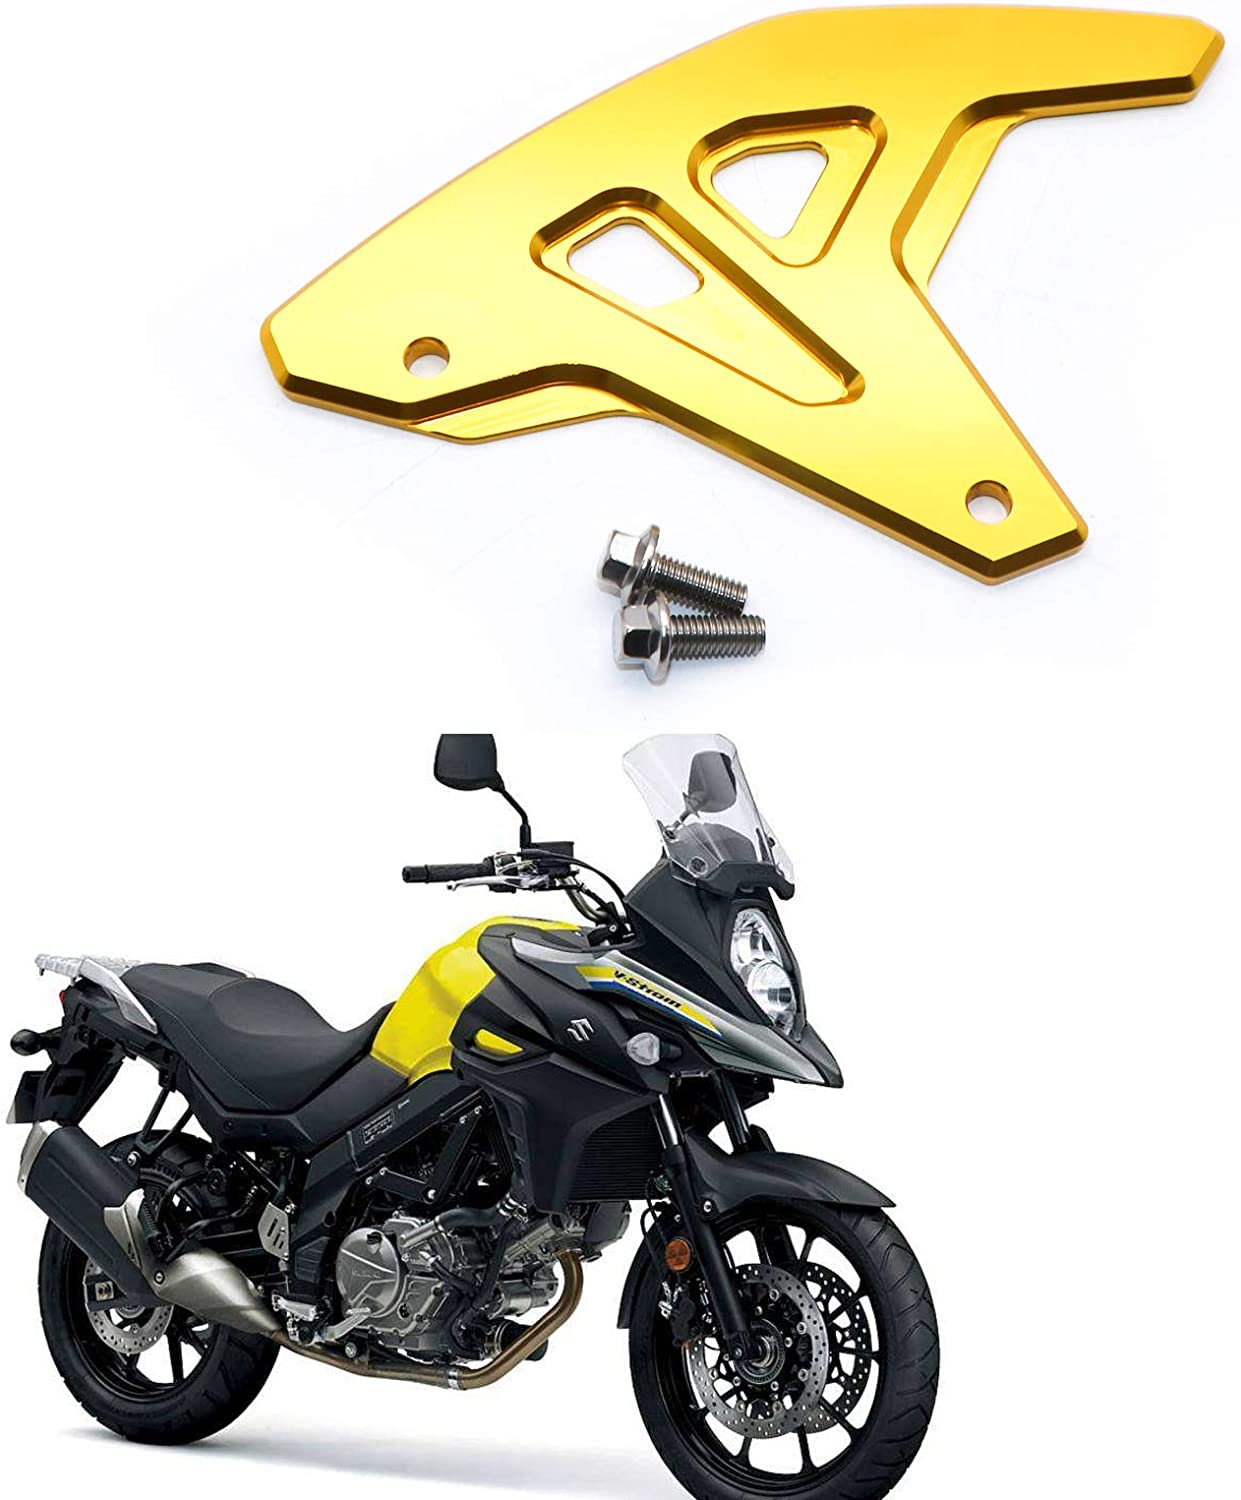 specialty shop Artudatech Rear Brake Disc Guard Cover Protector Large discharge sale DRZ4 Suzuki for